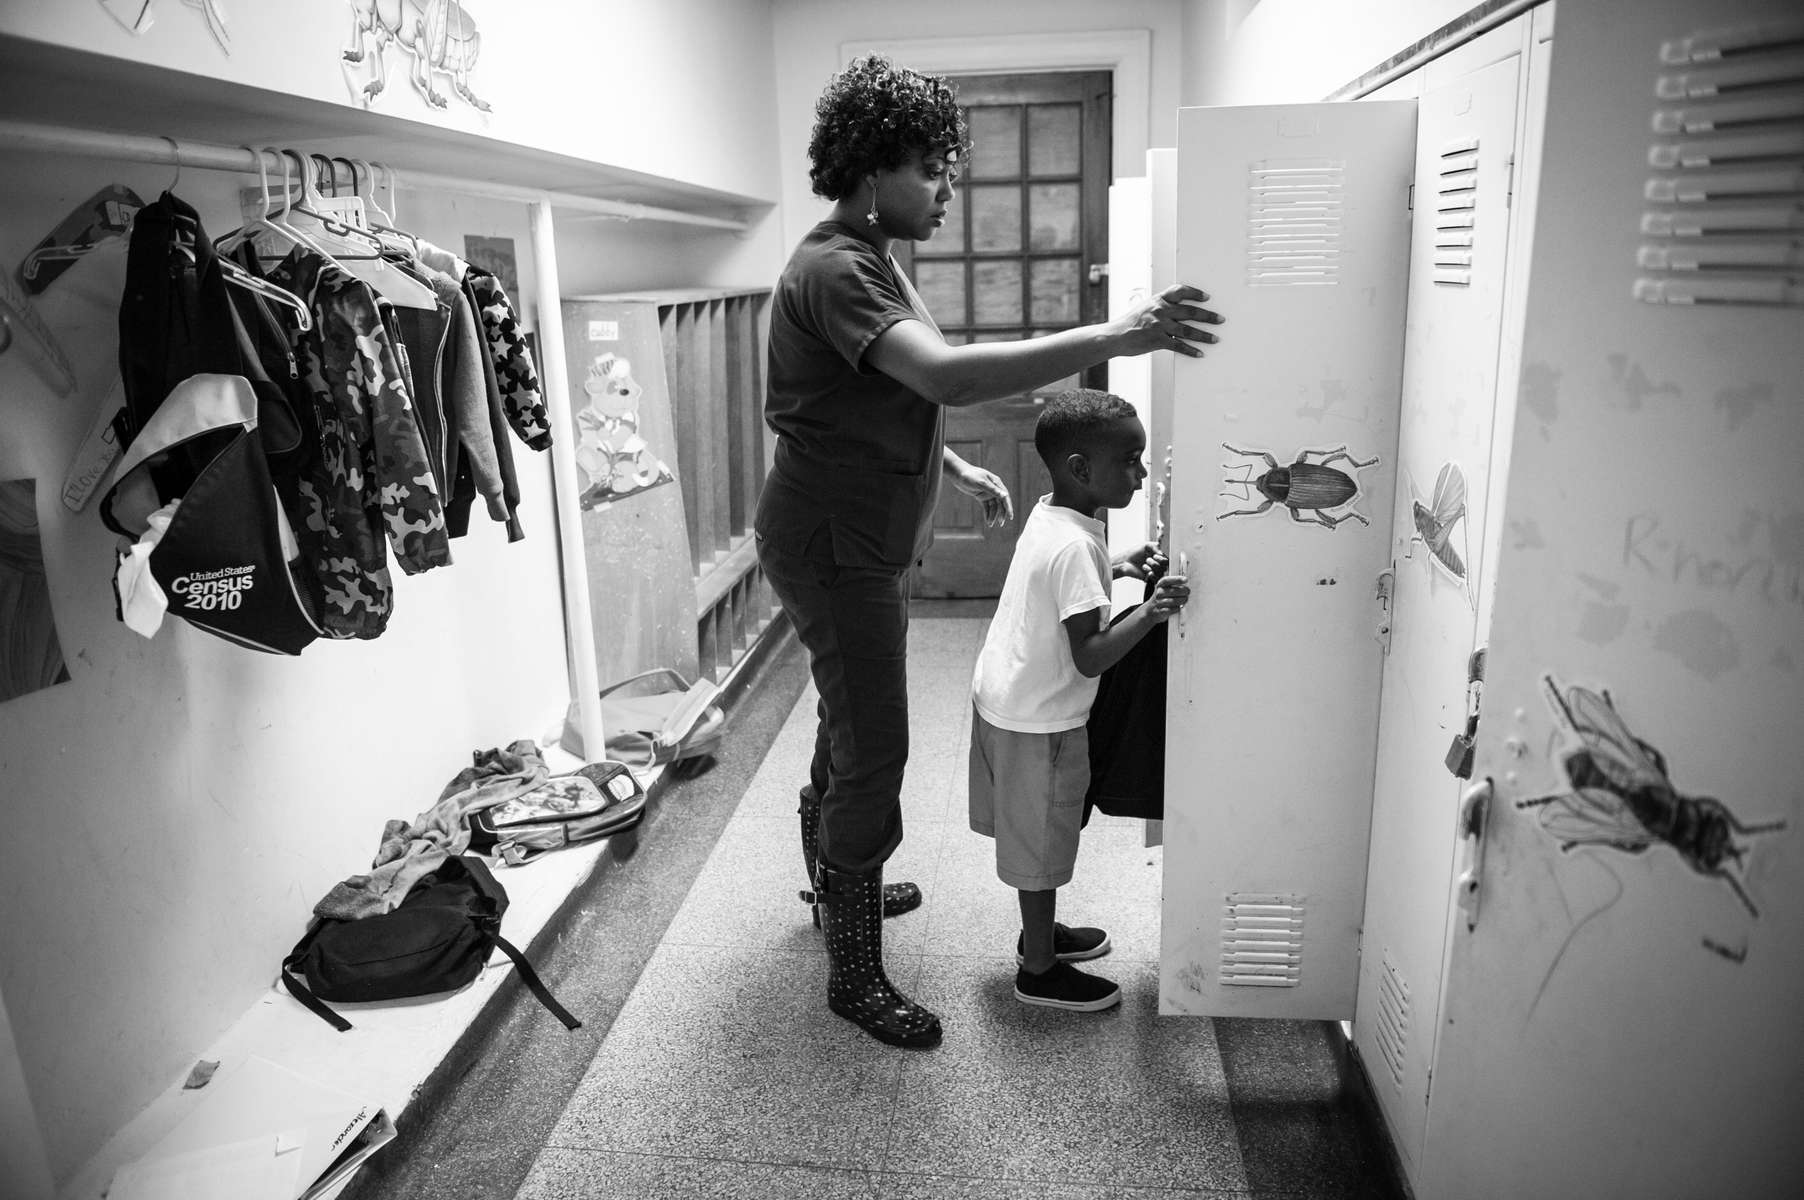 Nikki Brown picks up her son Kingston Brown, 5-years-old, at the Chambliss Center for Children in Chattanooga, TN on August 21, 2013.